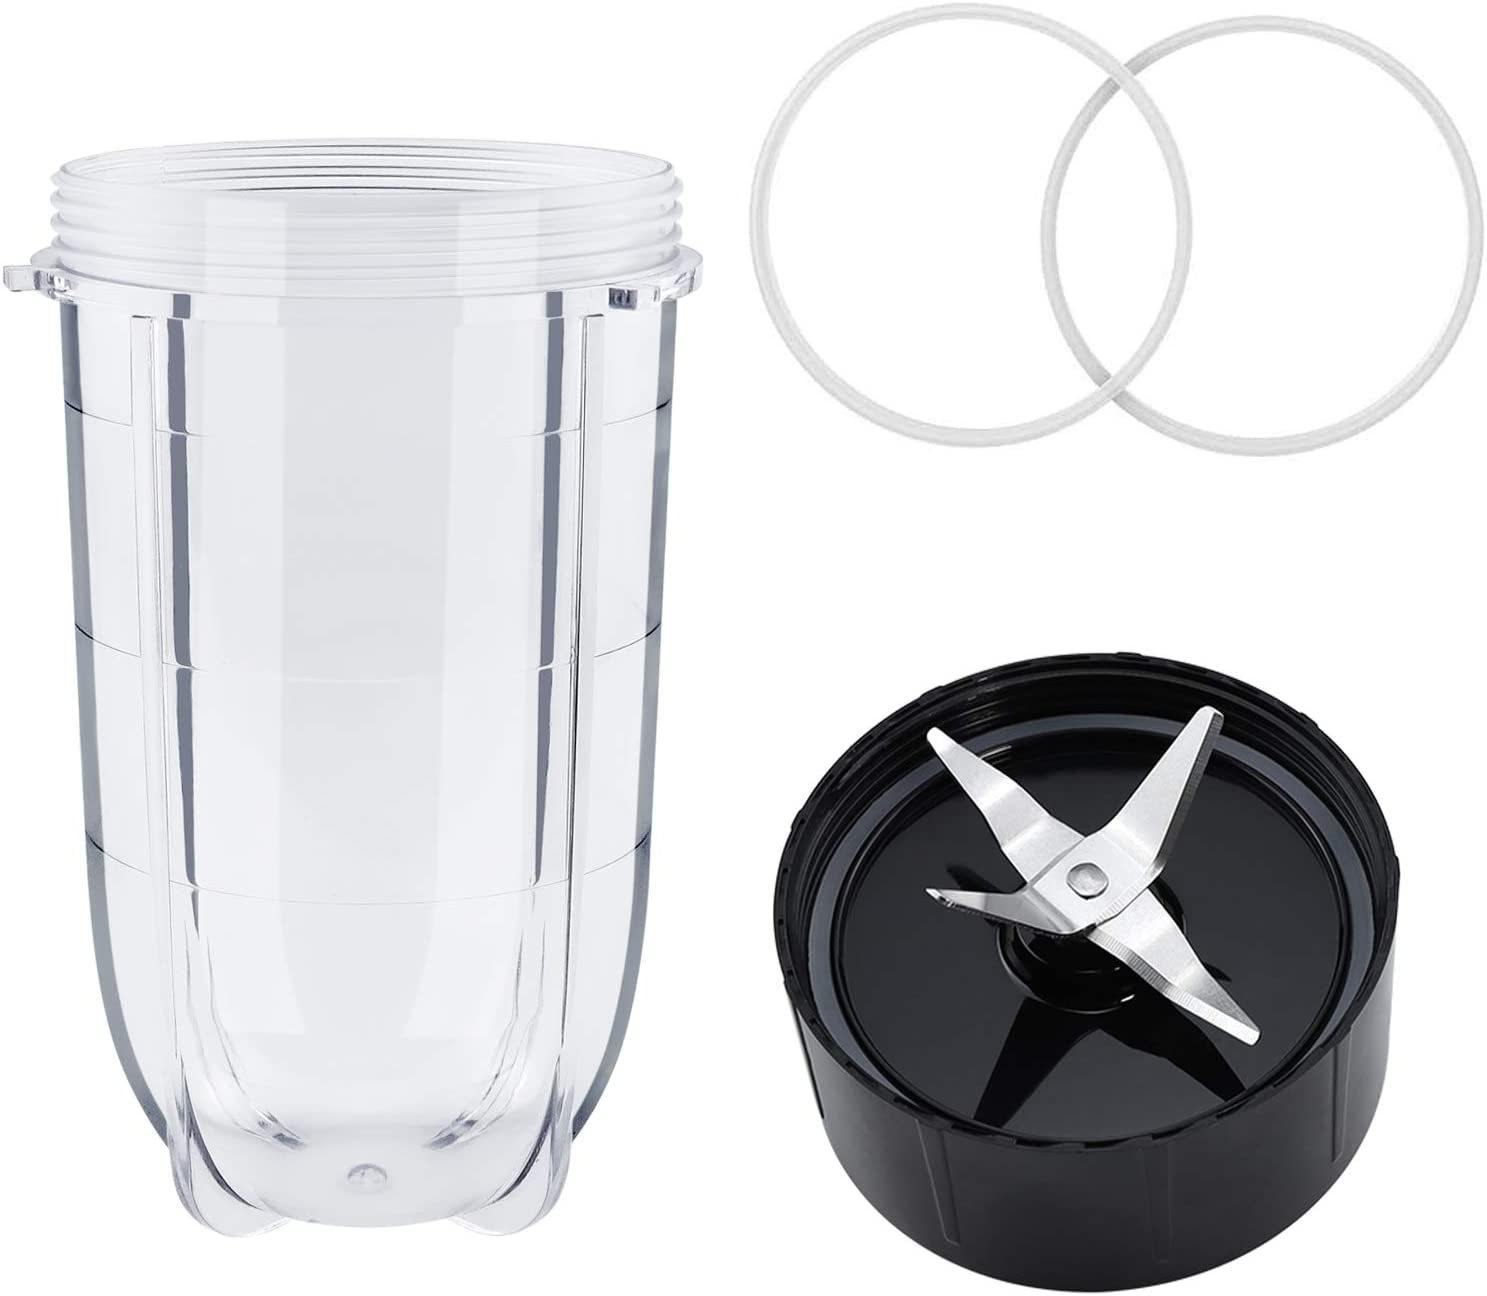 Beaquicy 16OZ Cup & Cross Blade & 2 Pcs Gaskets - Replacement for 250W Magic Bullet Blender Juicer/Mixer, MB1001 Series